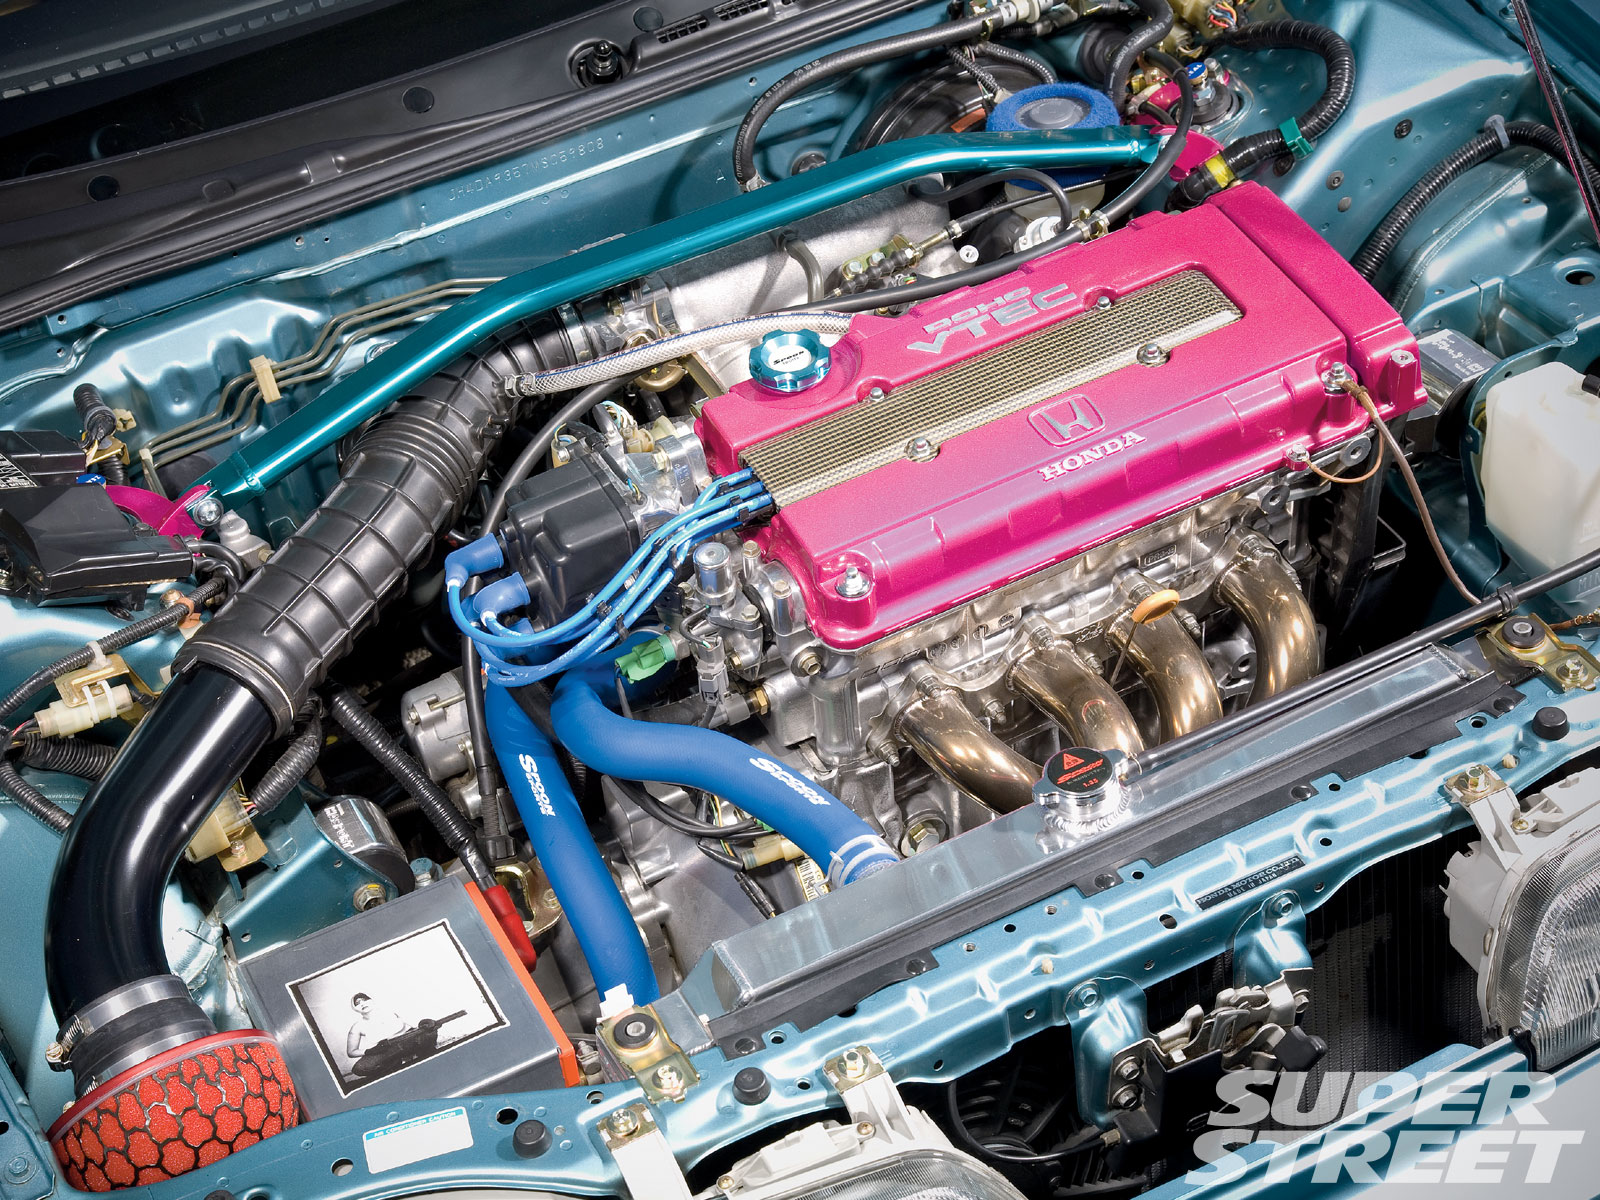 1991 Acura Integra LS - Dave Chik - Super Street Magazine on